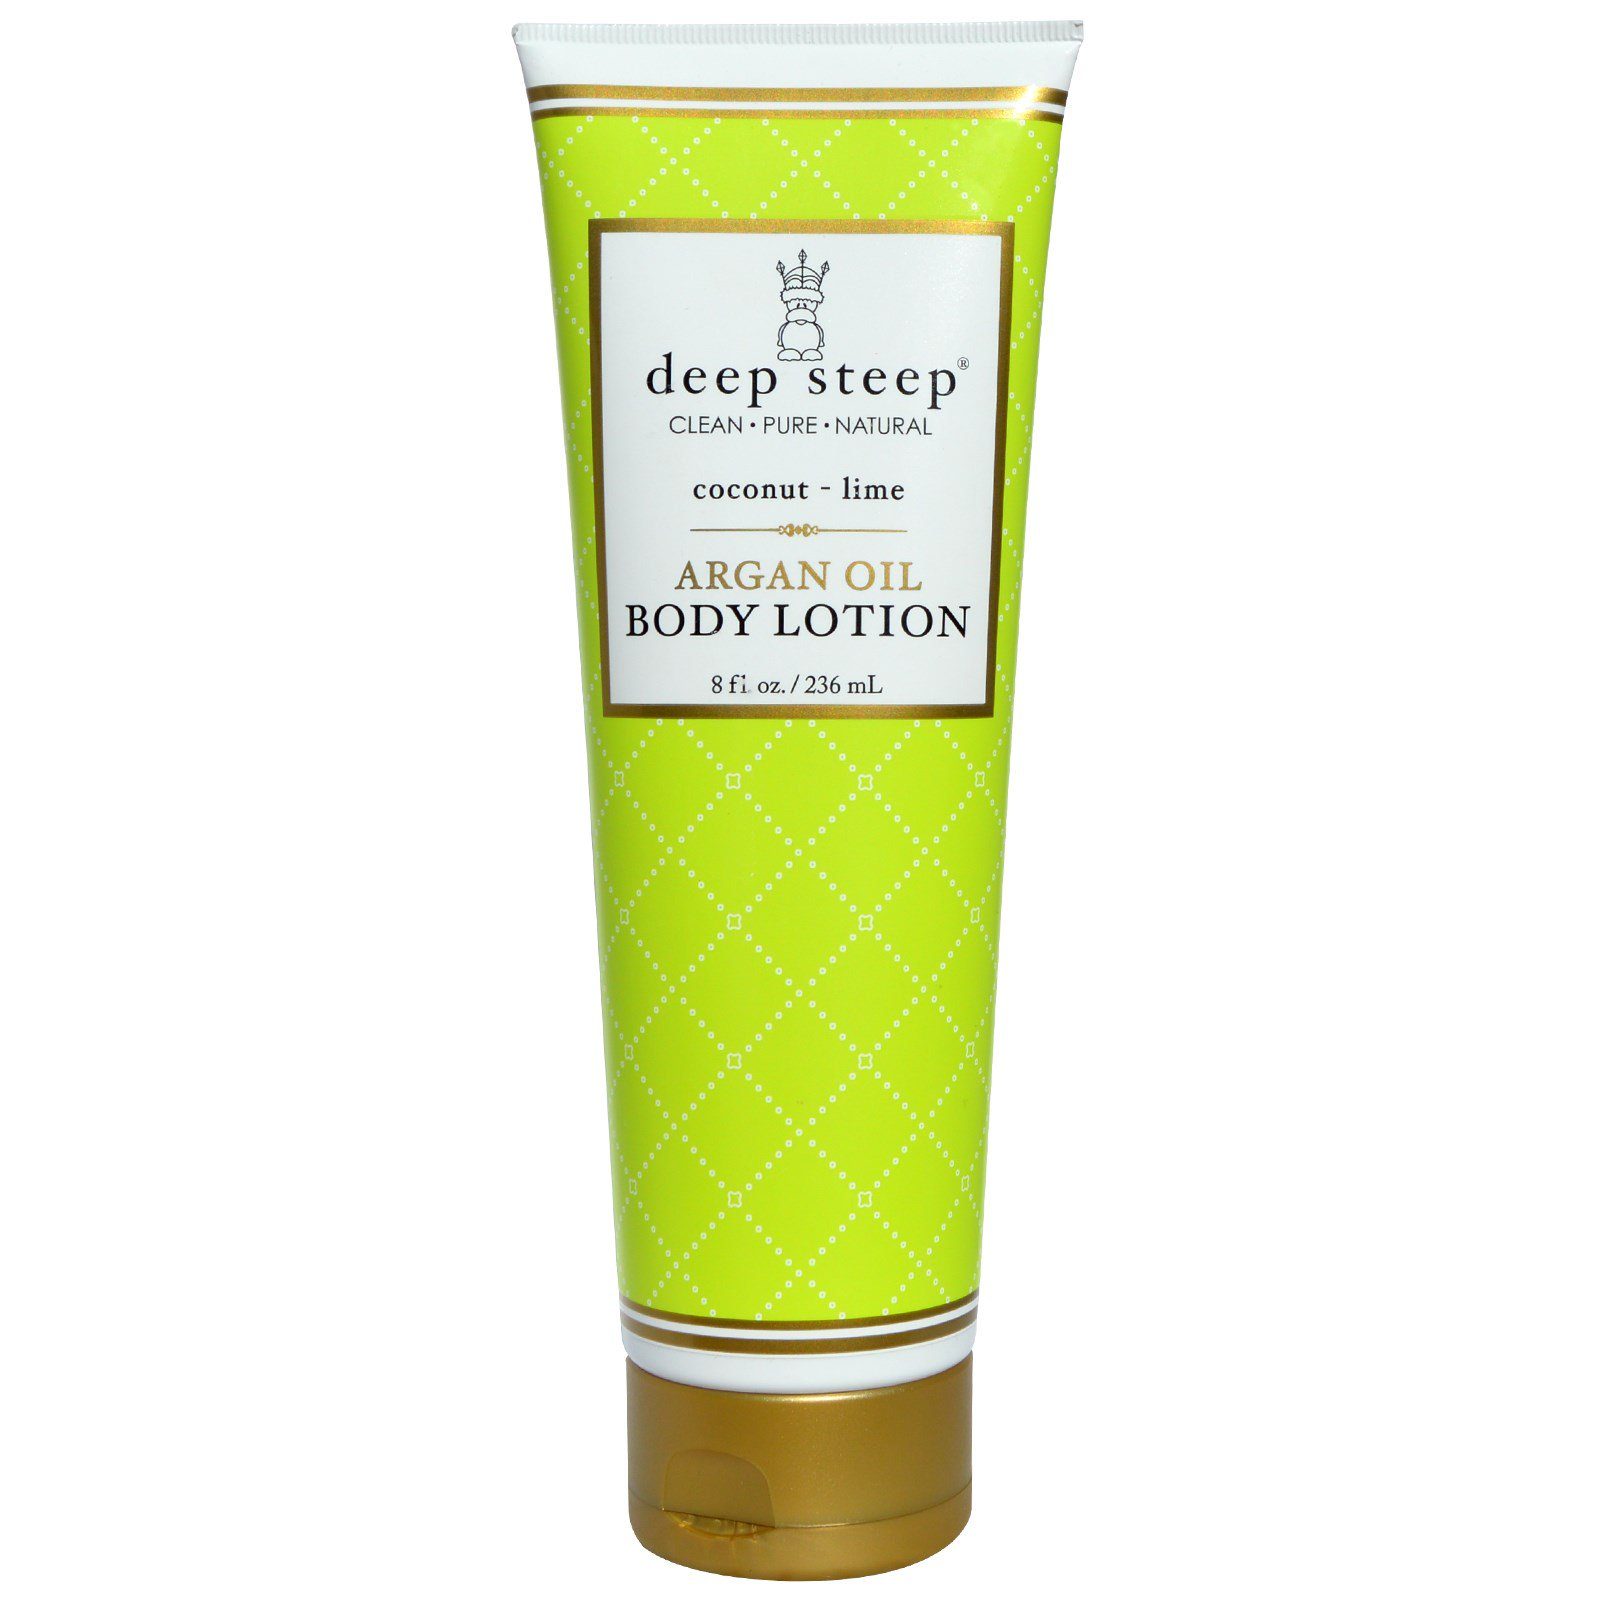 Deep Steep, Argan Oil Body Lotion, Coconut - Lime, 8 fl oz (236 ml)